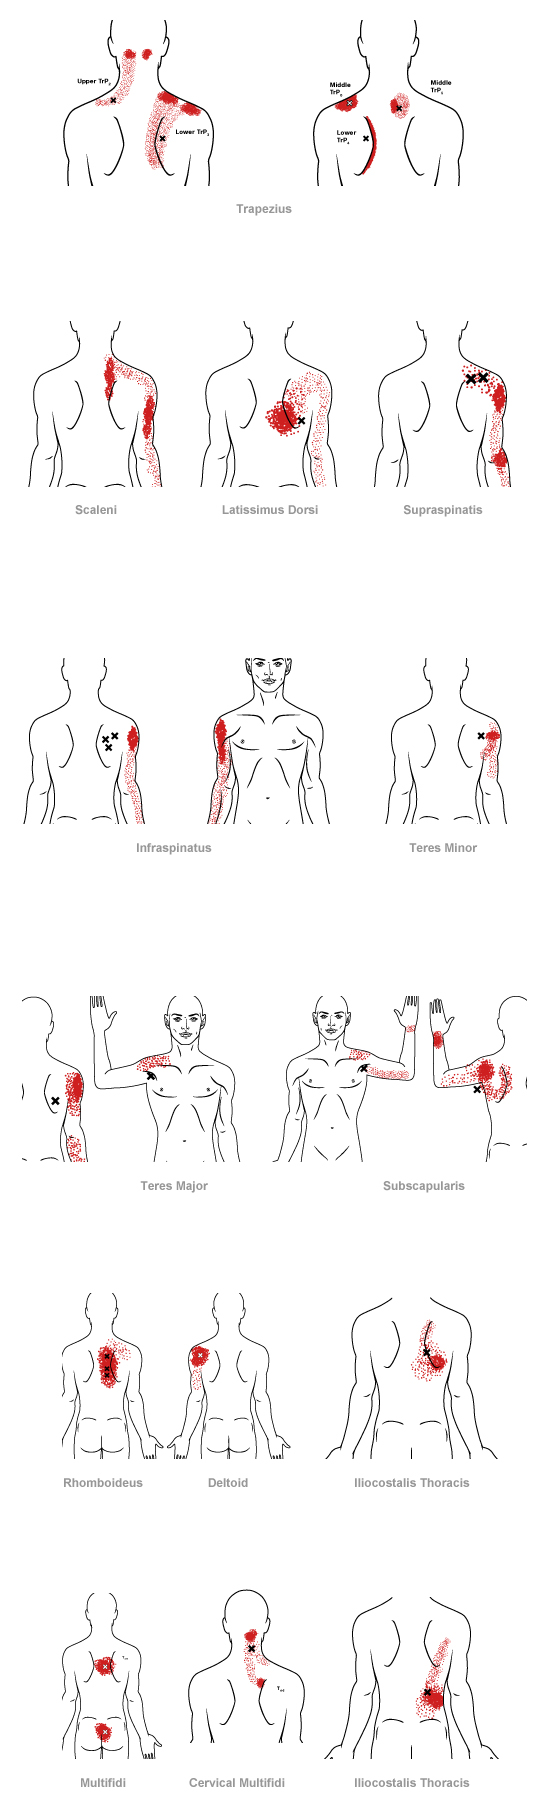 Myofascial Pain Syndrome muscle pain